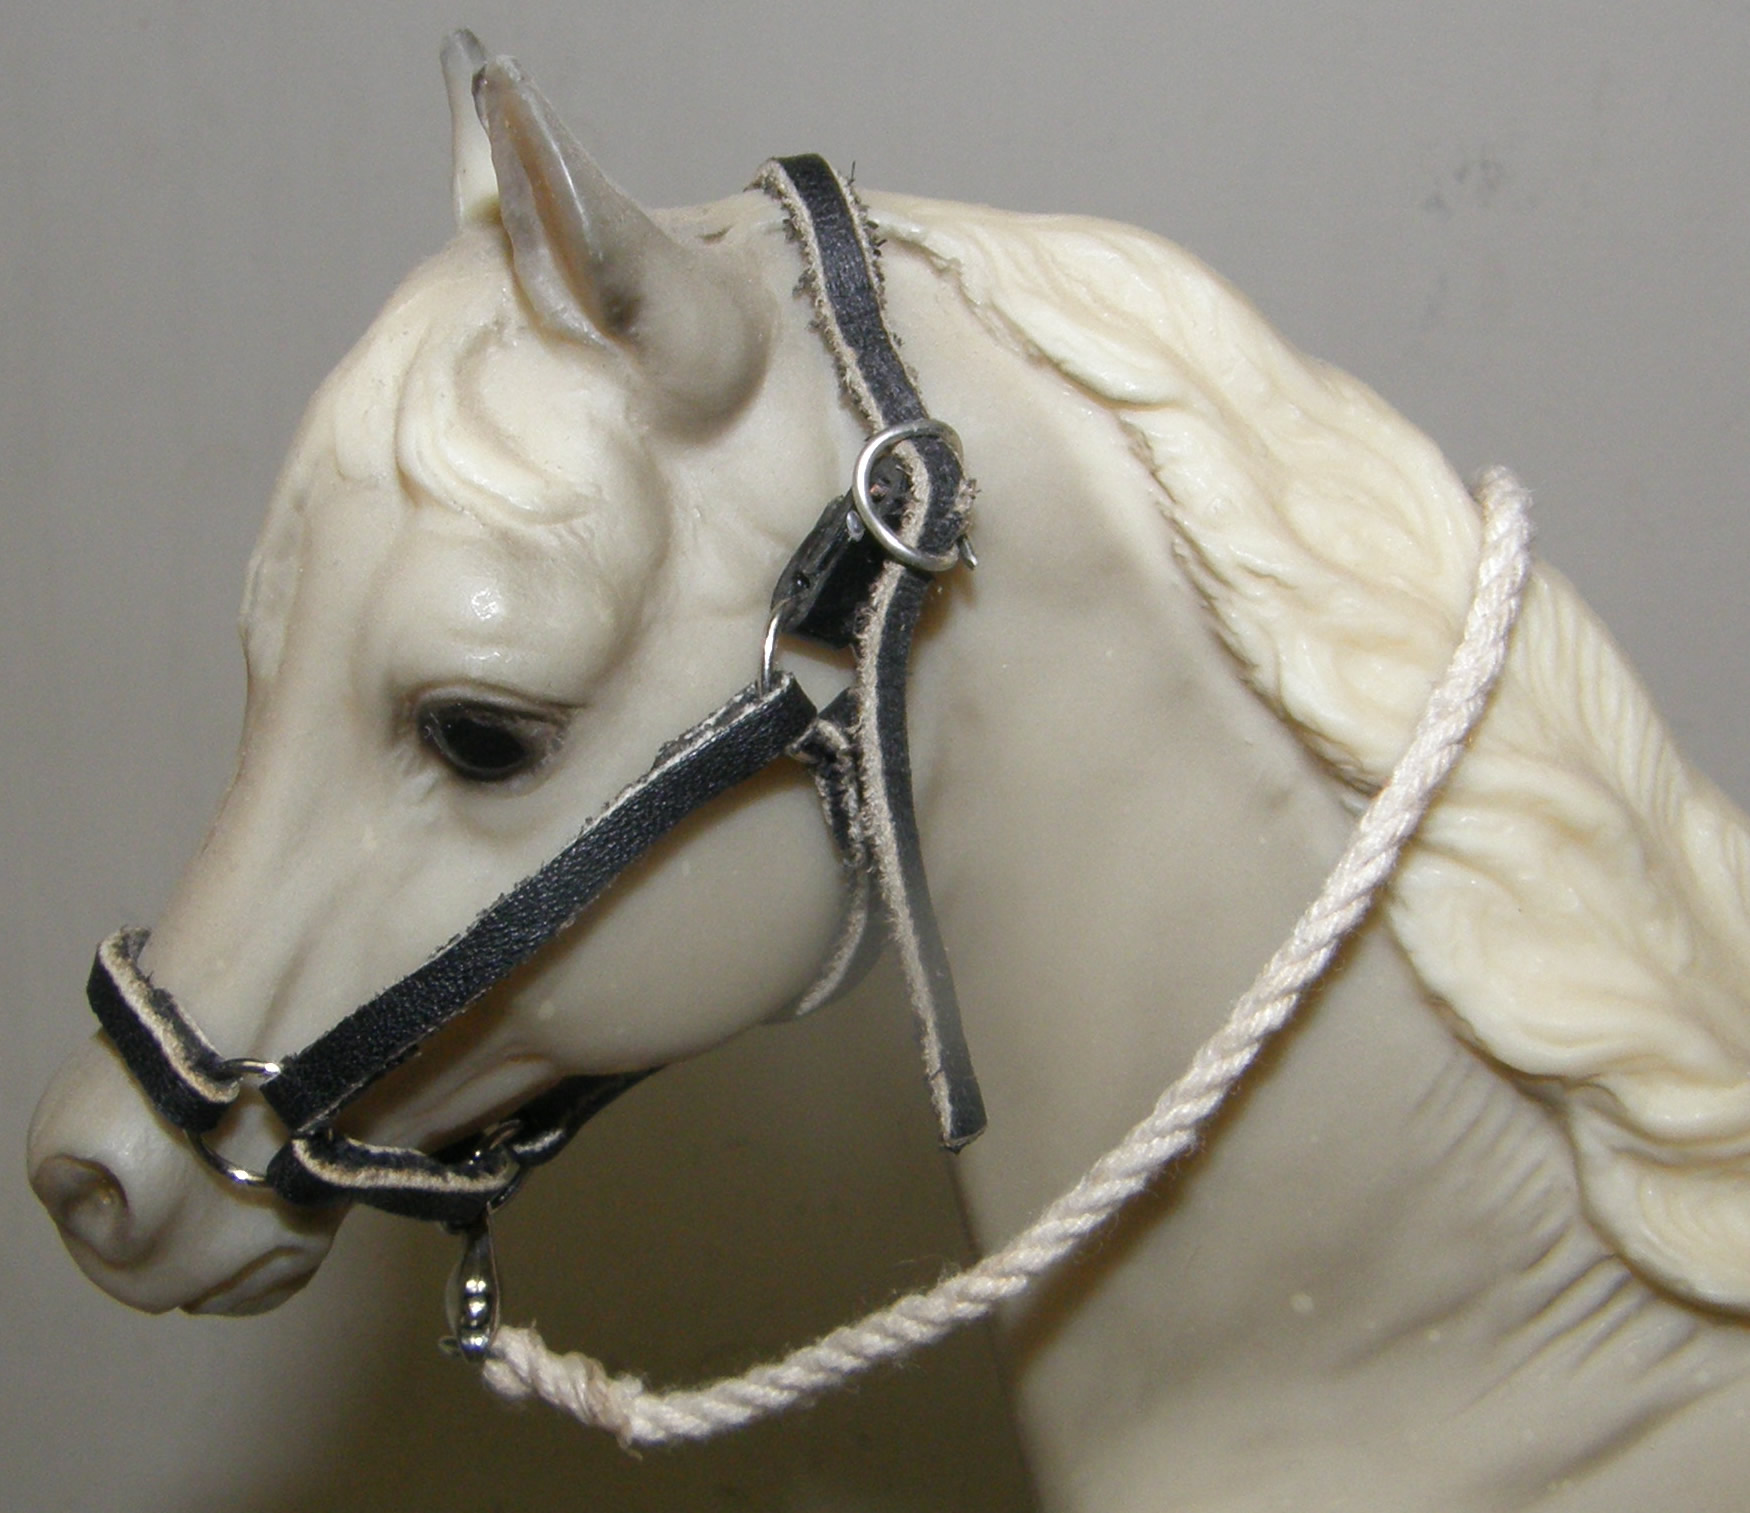 Breyer Model Horse Tack Props Breyer Horse Leather Halter & Cotton Rope Lead